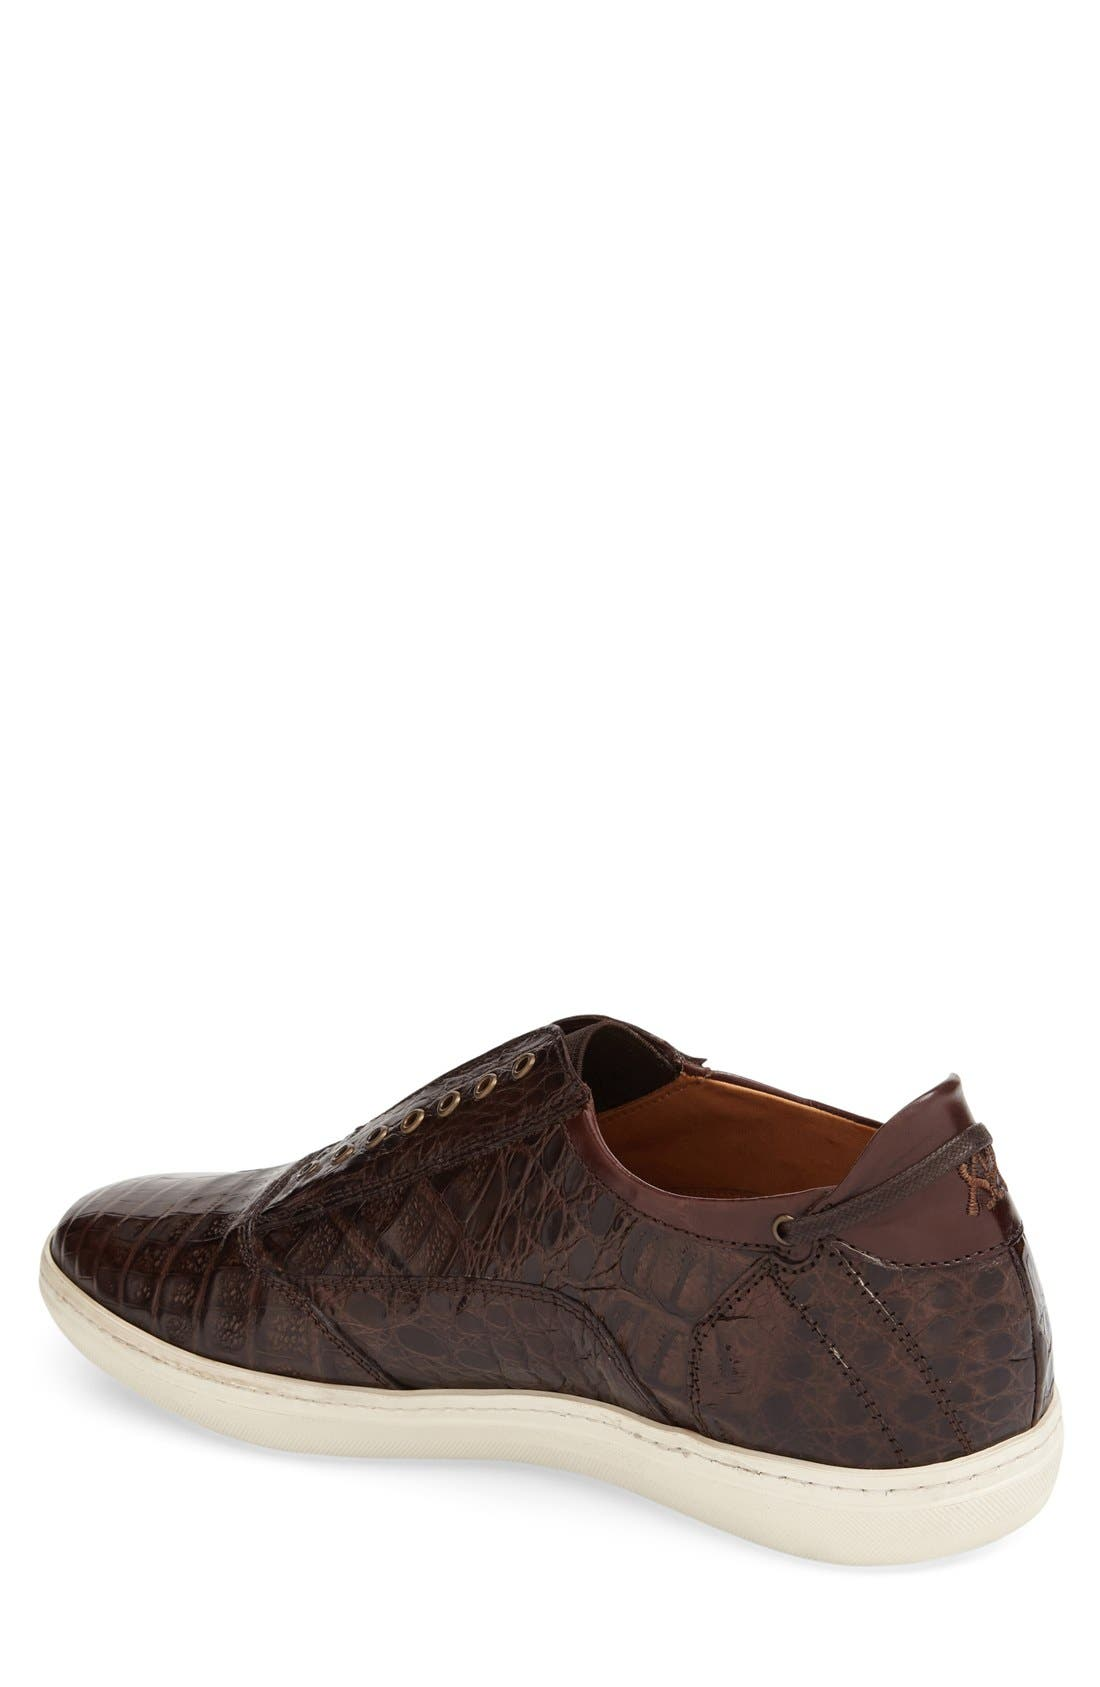 'Emmanuel' Slip-on Sneaker,                             Alternate thumbnail 2, color,                             Brown Crocodile